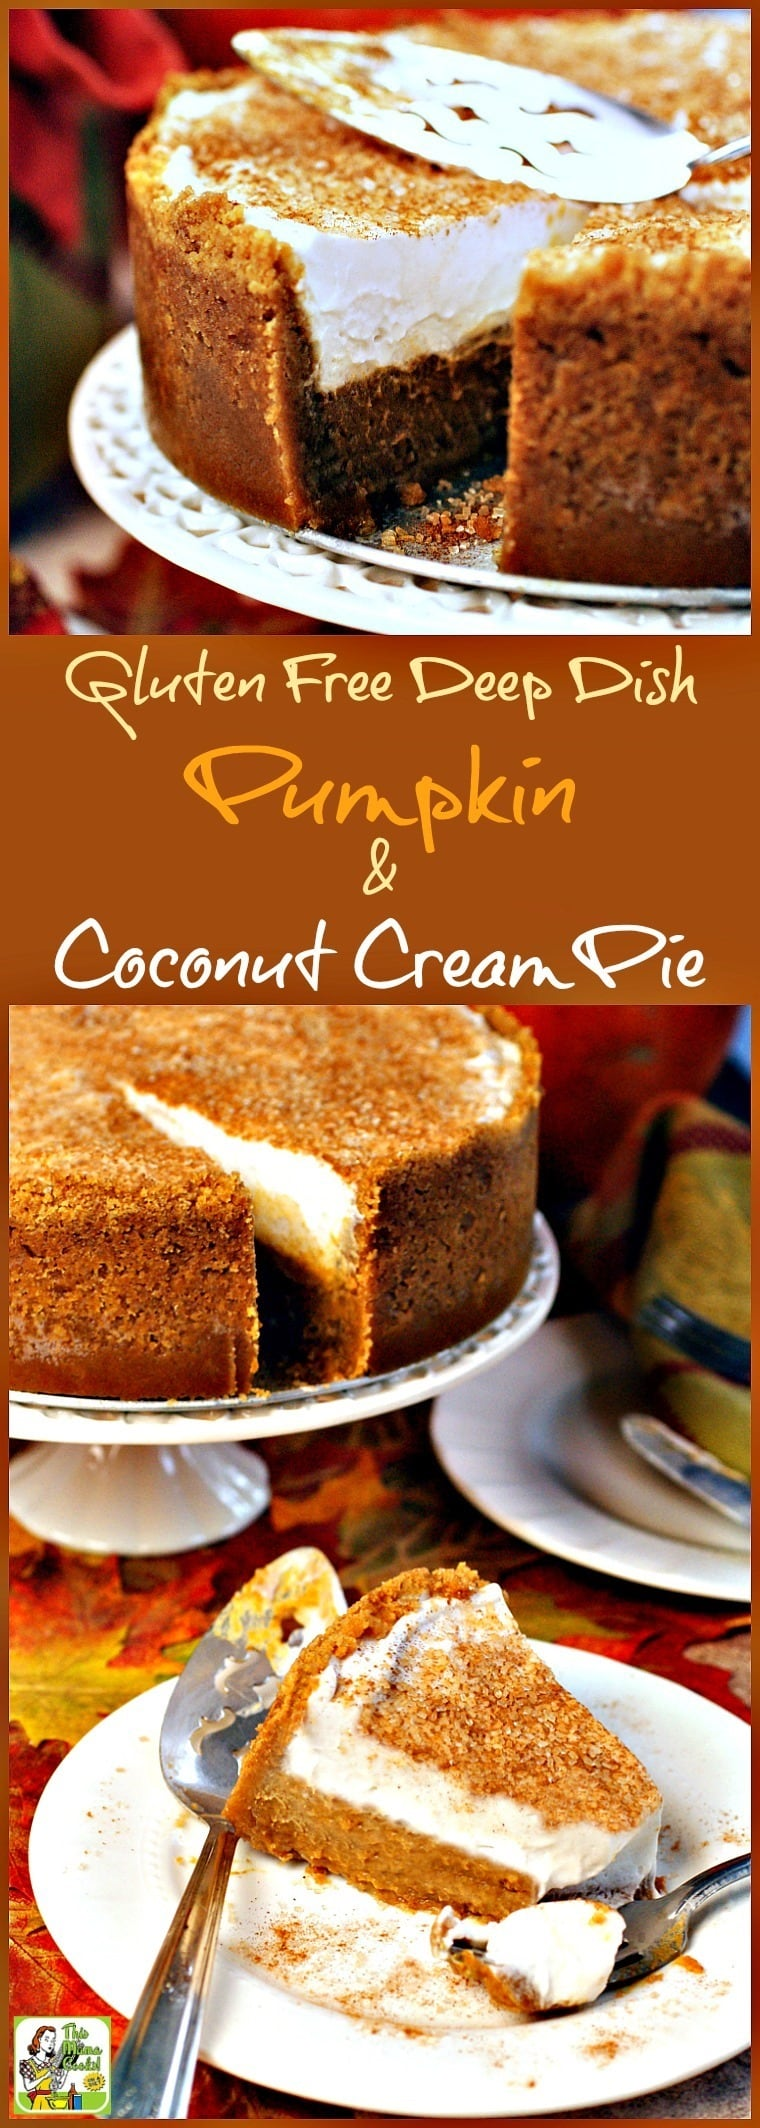 Not only is this pumpkin dessert recipe gluten free and dairy free, but it's easy to make and transport to a potluck party, too! Click here to get the recipe for Gluten Free Deep Dish Pumpkin & Coconut Cream Pie. #pumpkin #pie #dessert #glutenfree #thanksgiving #coconut #pumpkinpie